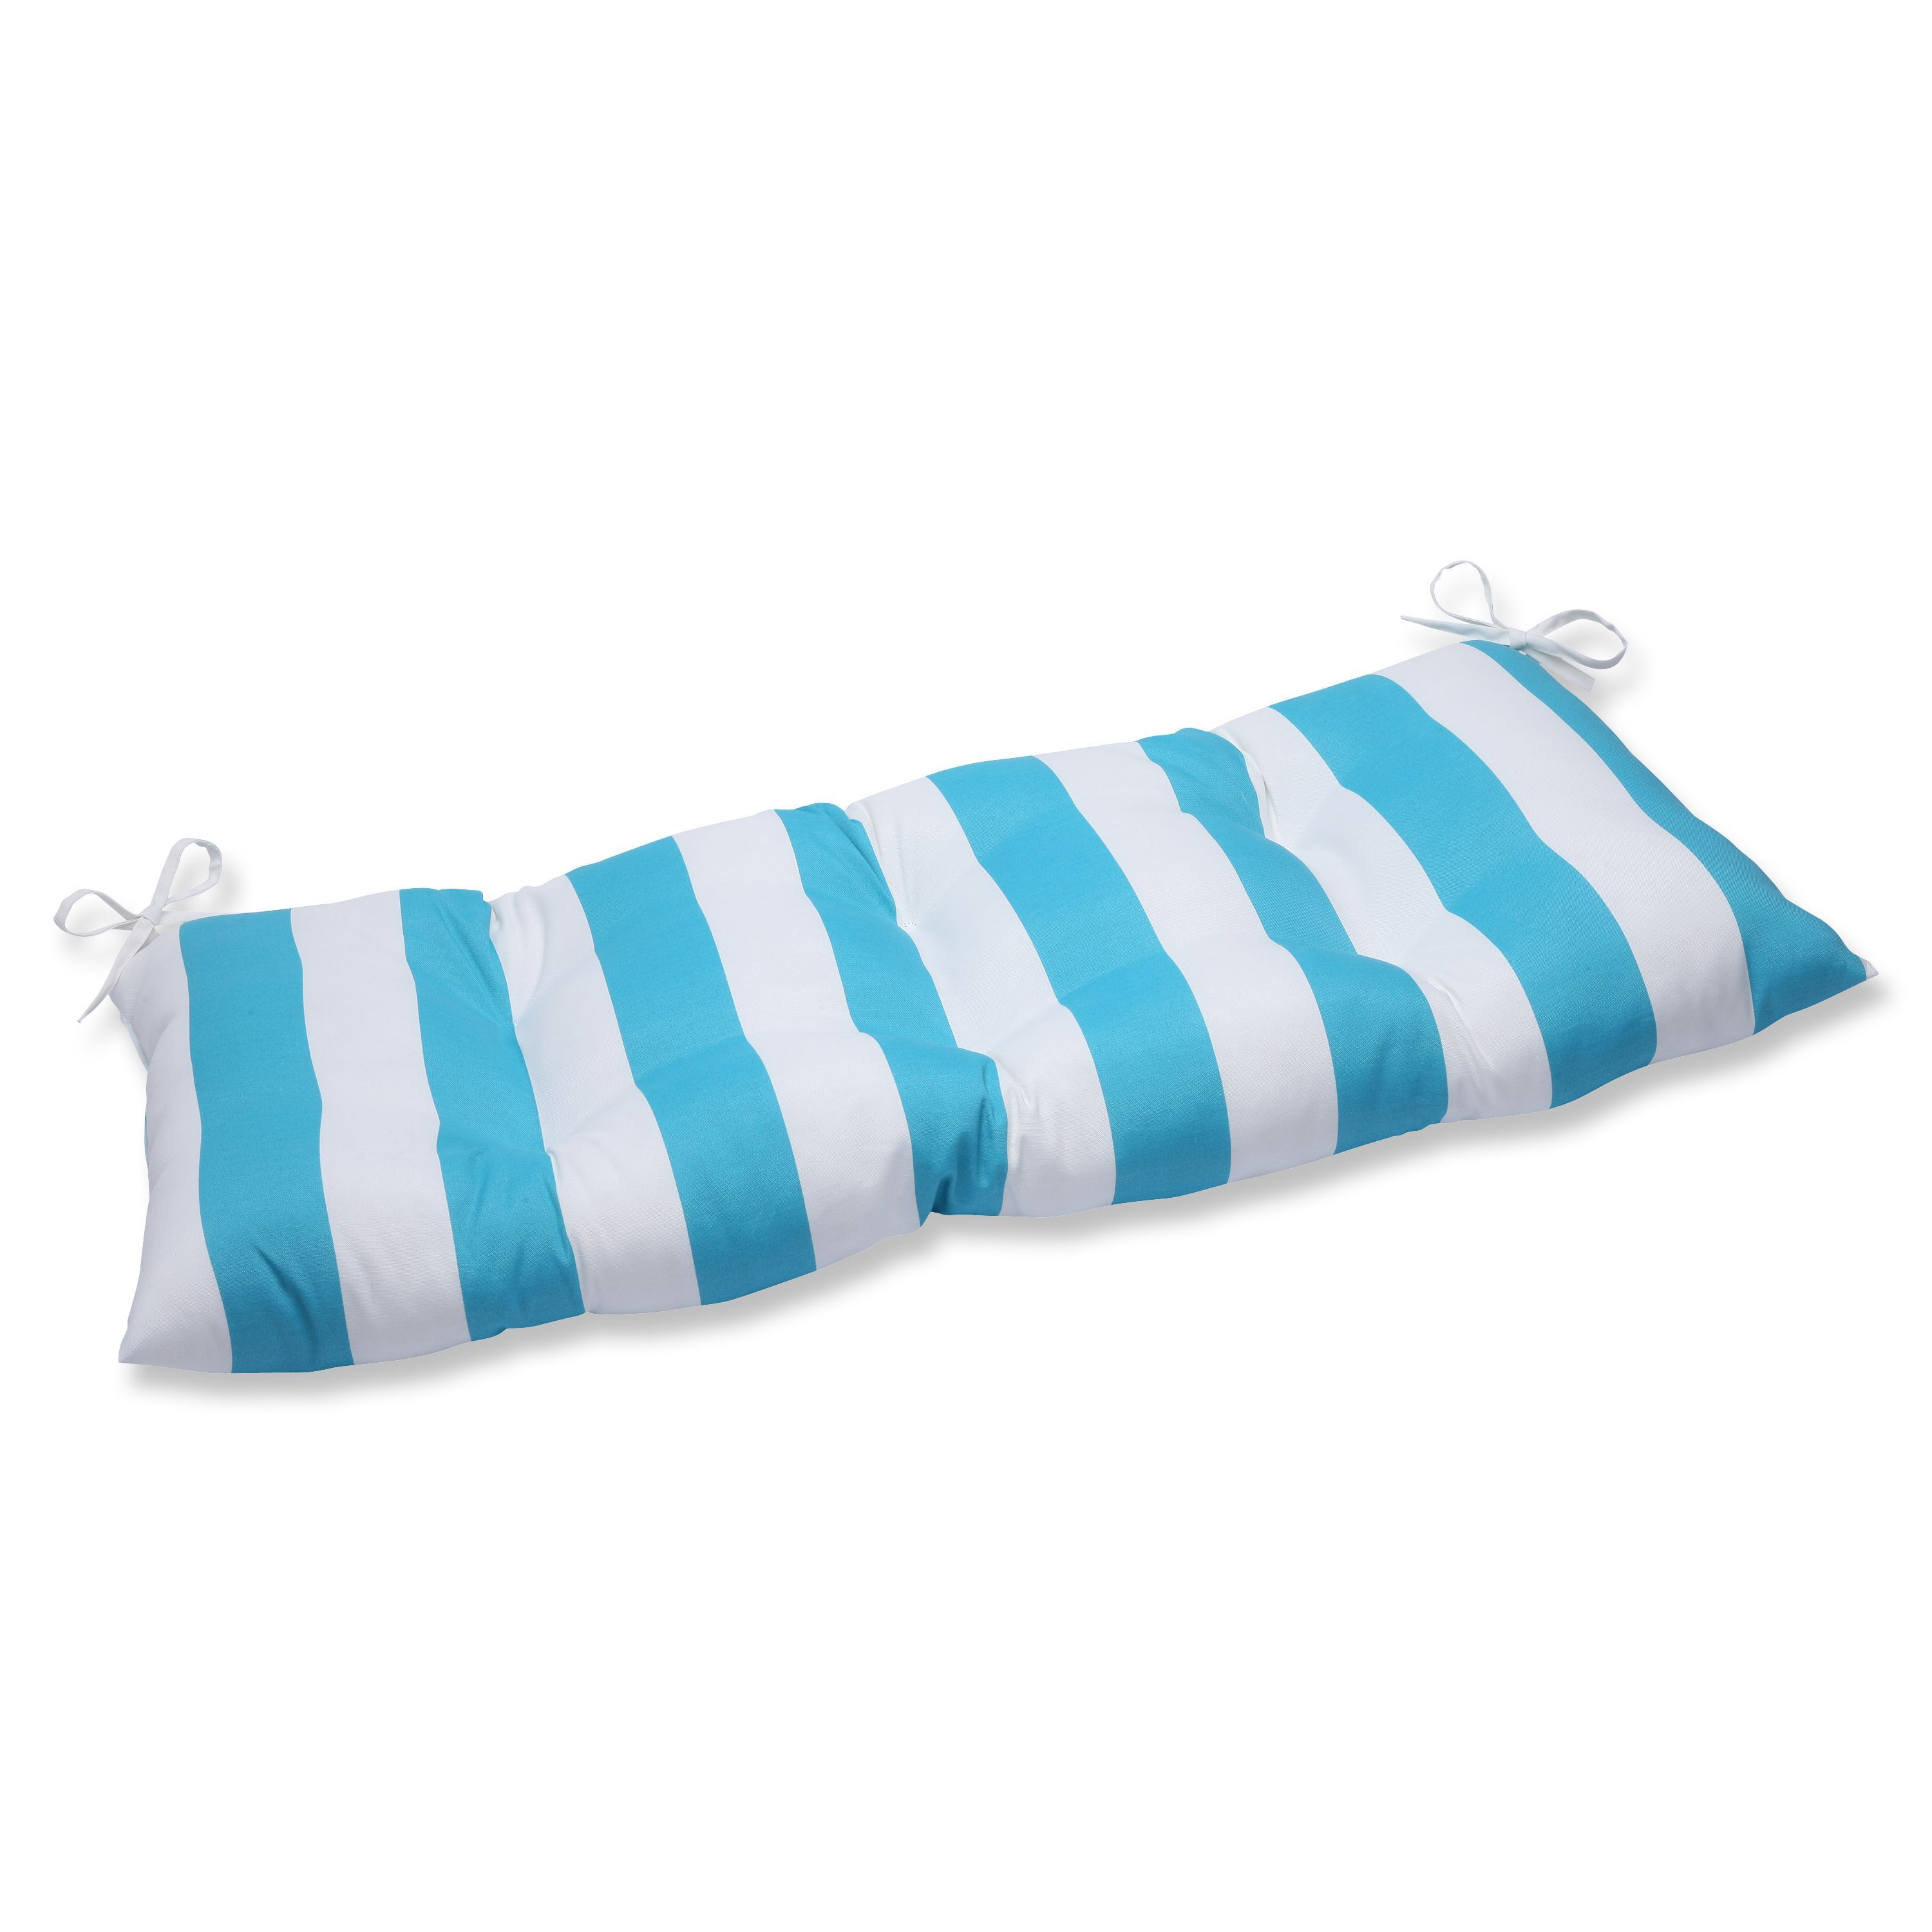 Pillow Perfect Outdoor Indoor Cabana Stripe Turquoise Swing Bench Cushion Perfect Pillow Custom Outdoor Cushions Love Seat